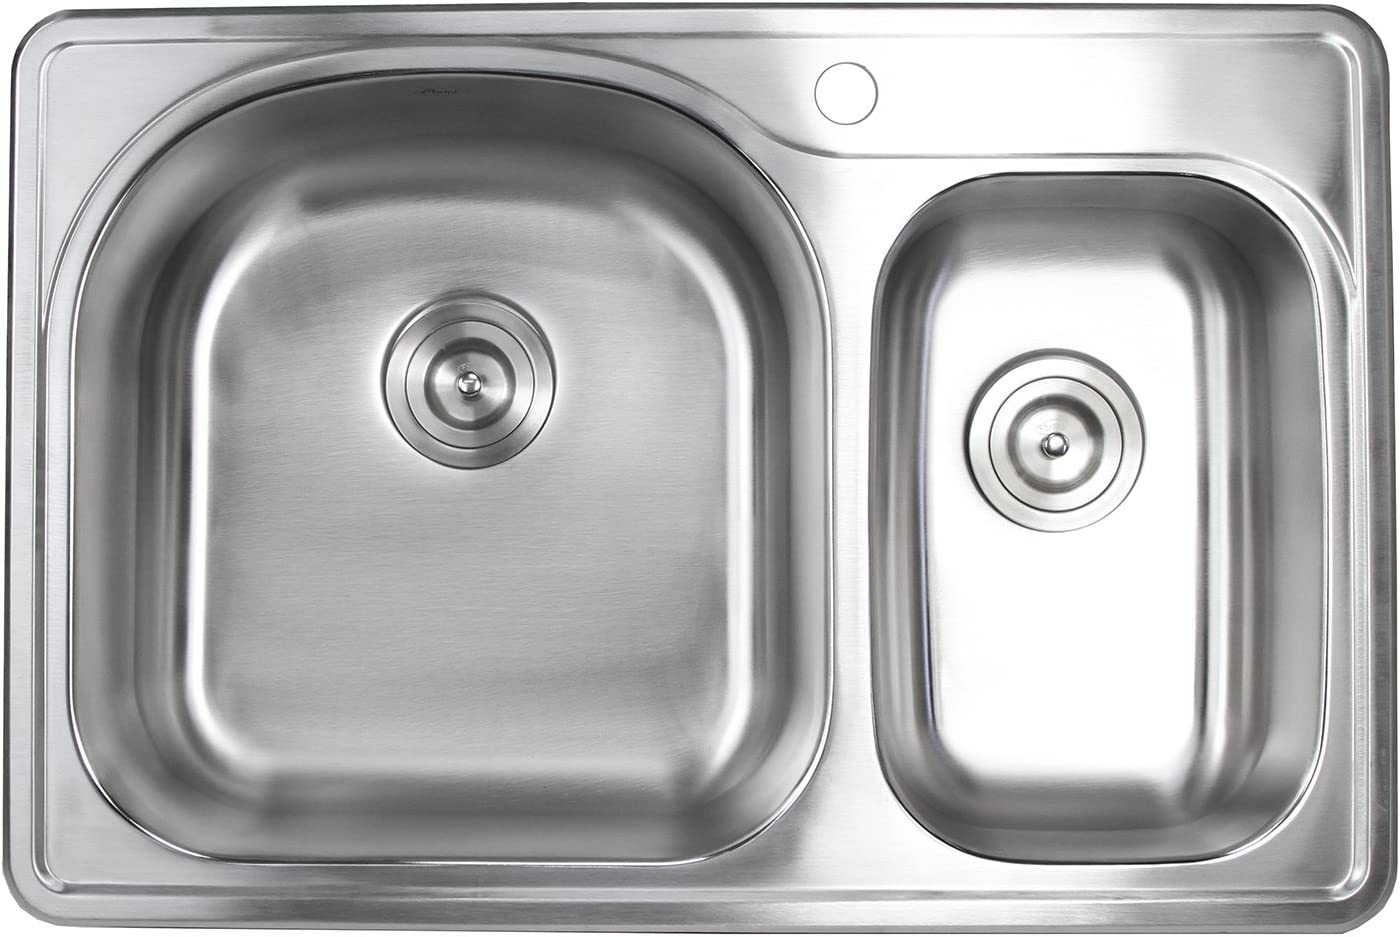 33 Inch Top-mount Drop-in Stainless Steel 30 Limited Translated time cheap sale Bowl Kitc Double 70